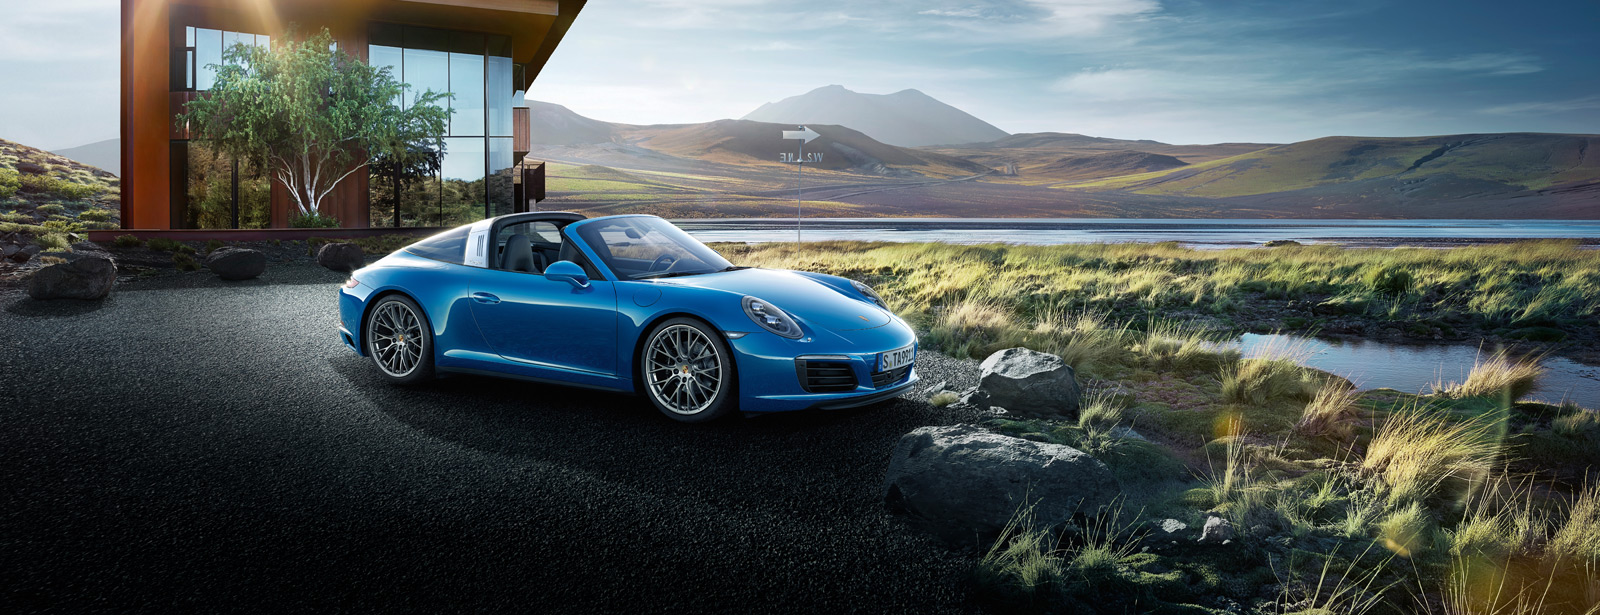 Porsche The new 911 Targa 4